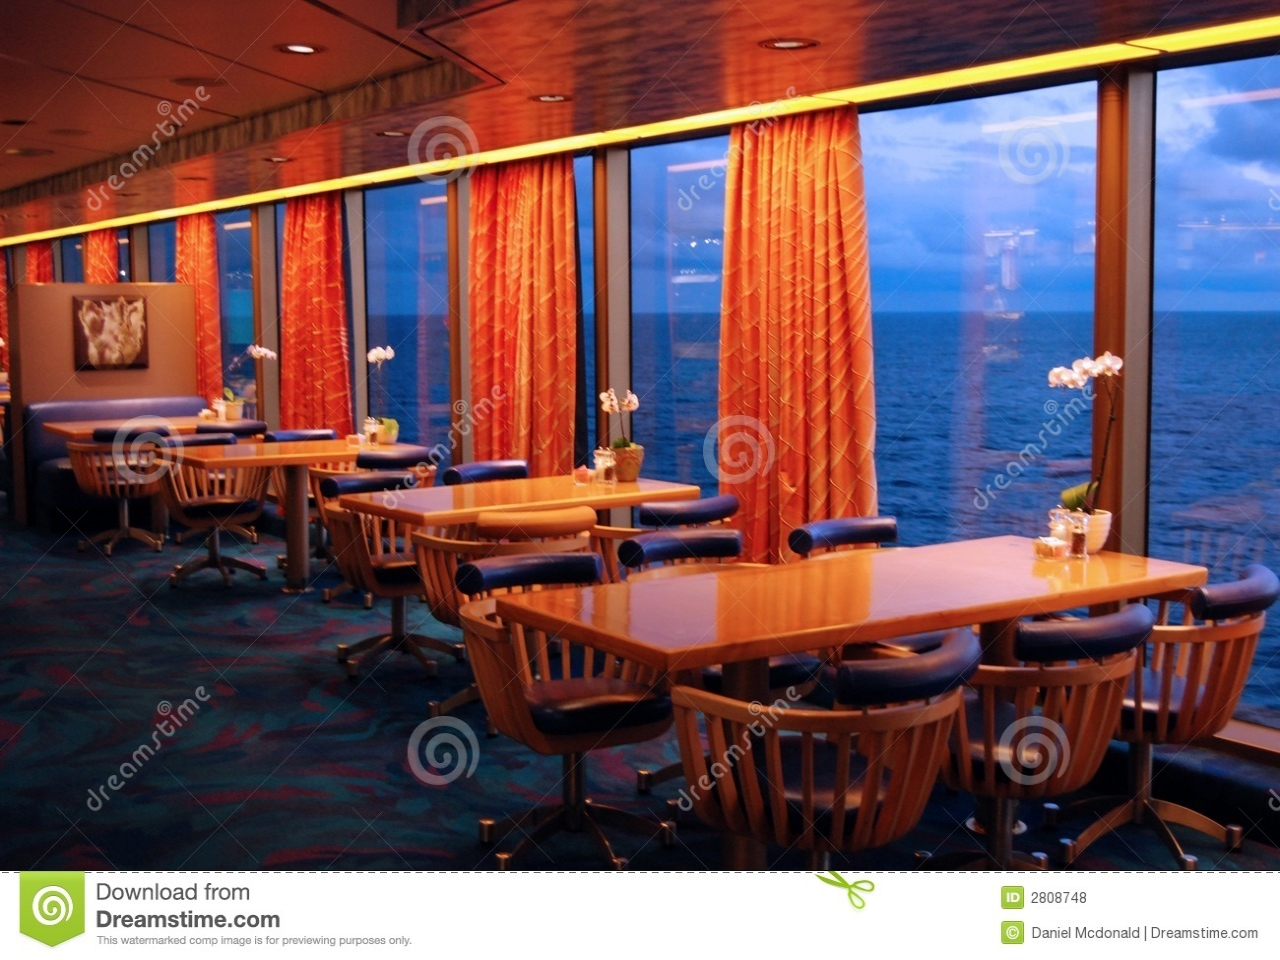 Royal Caribbean Cruise Ship Rooms Cruise Ship Dining Room